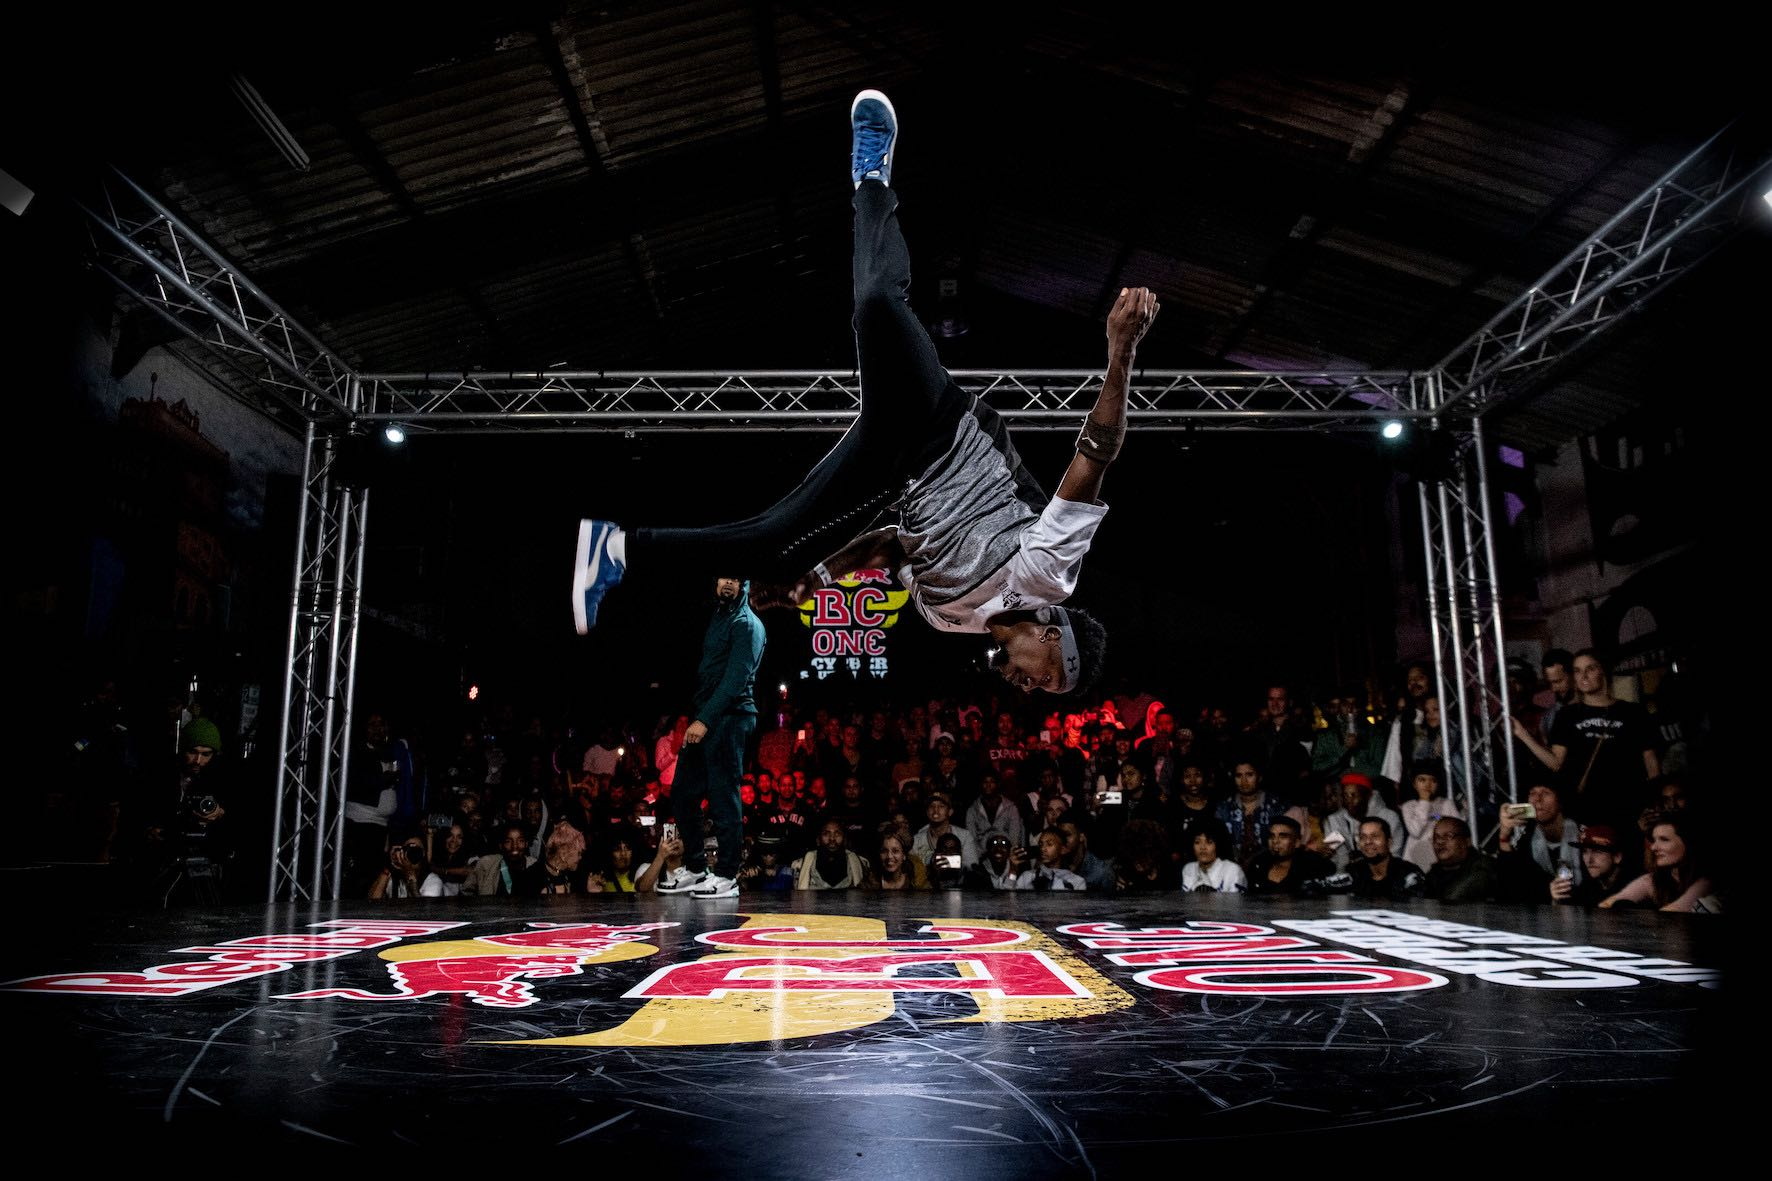 The longest running breaking competition in the world, Red Bull BC One, is set to find the South Africa's top B-boy and B-girl this April.